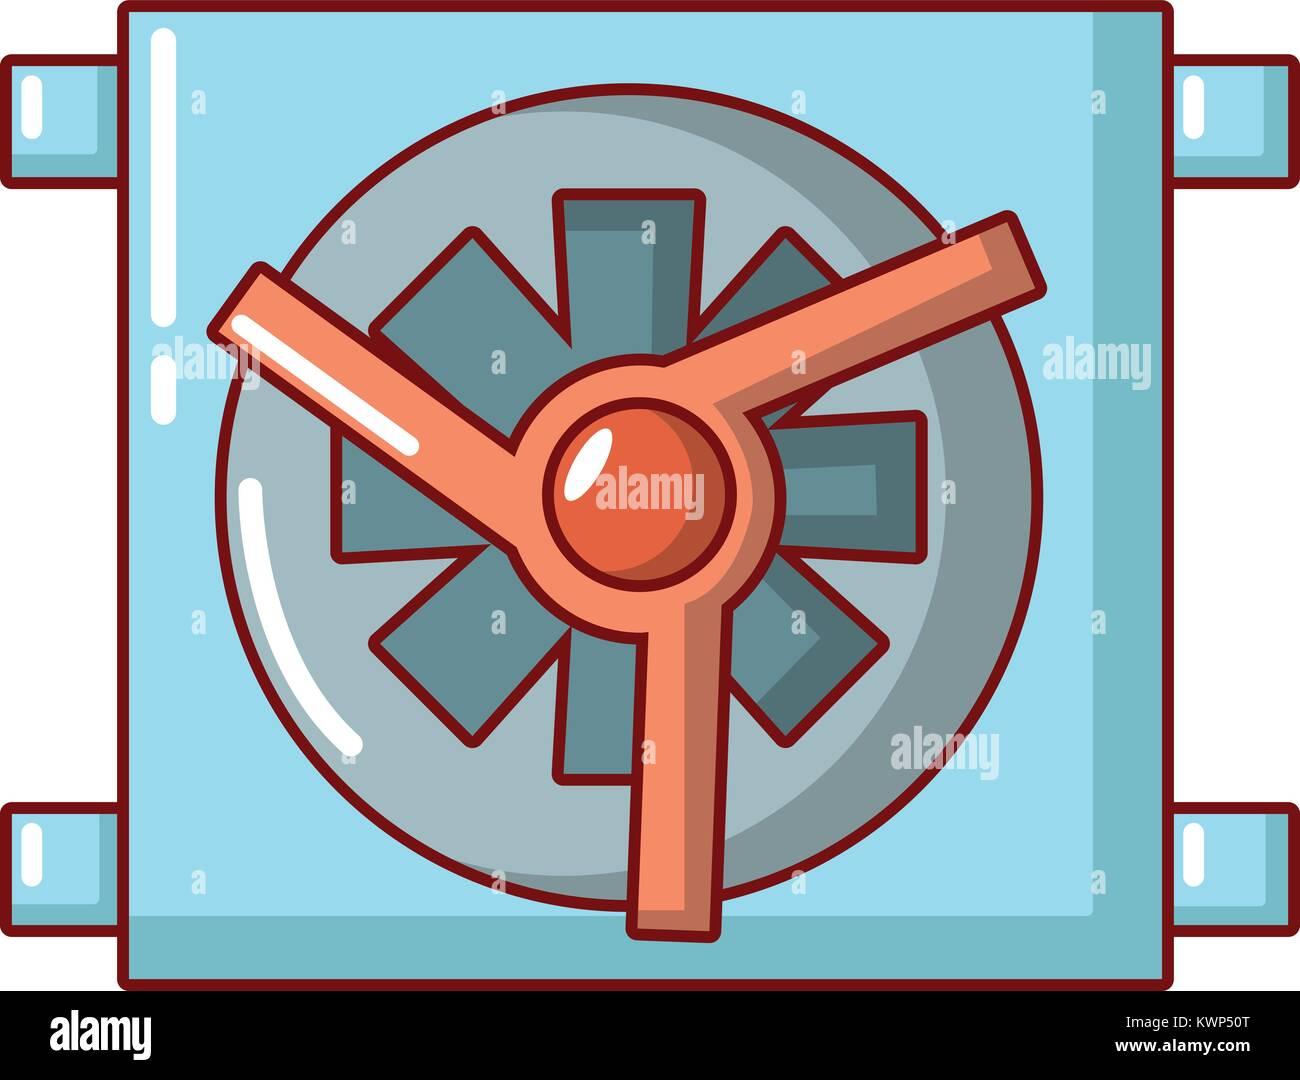 Dynamo Machine Stock Photos & Dynamo Machine Stock Images - Alamy